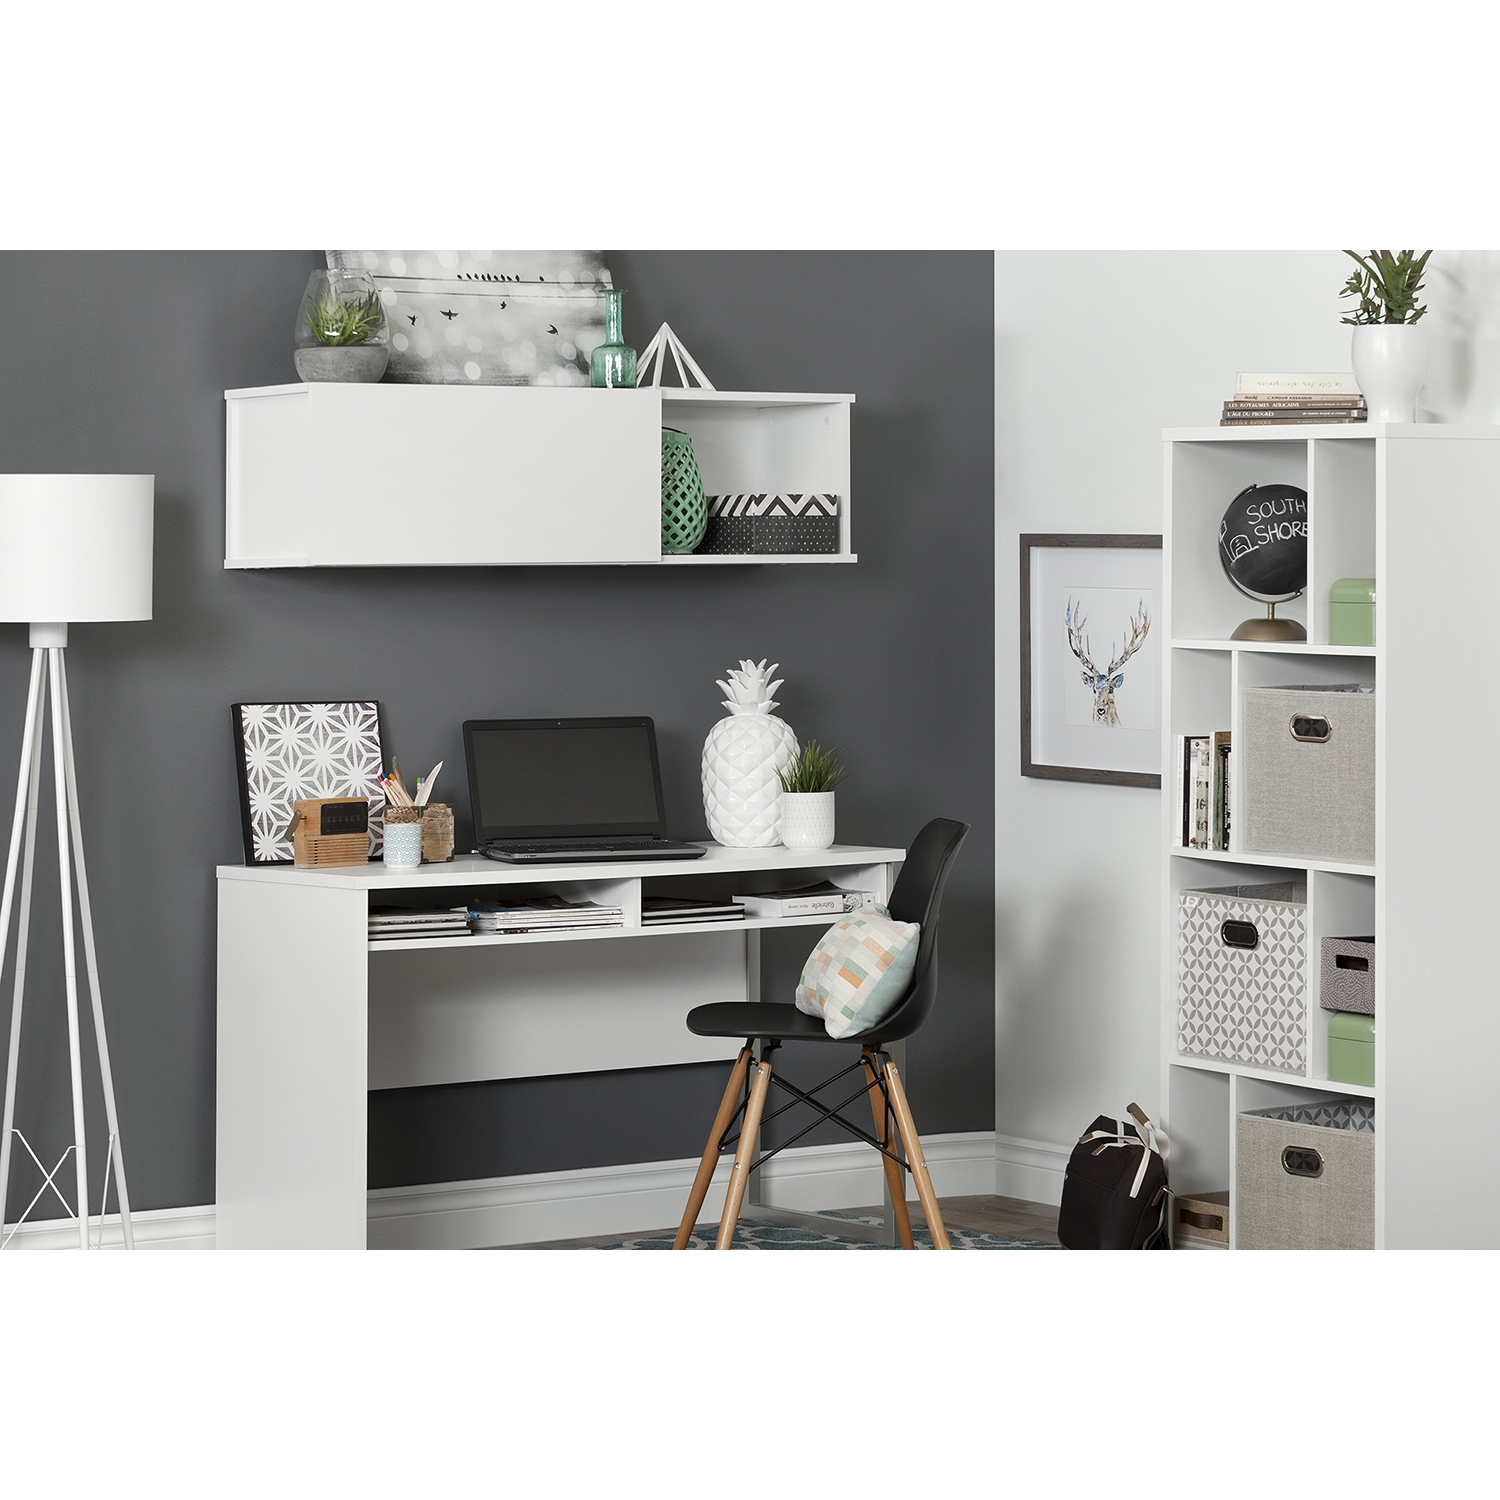 City Life Wall Mounted Storage Unit - Gray Maple - SS-10379